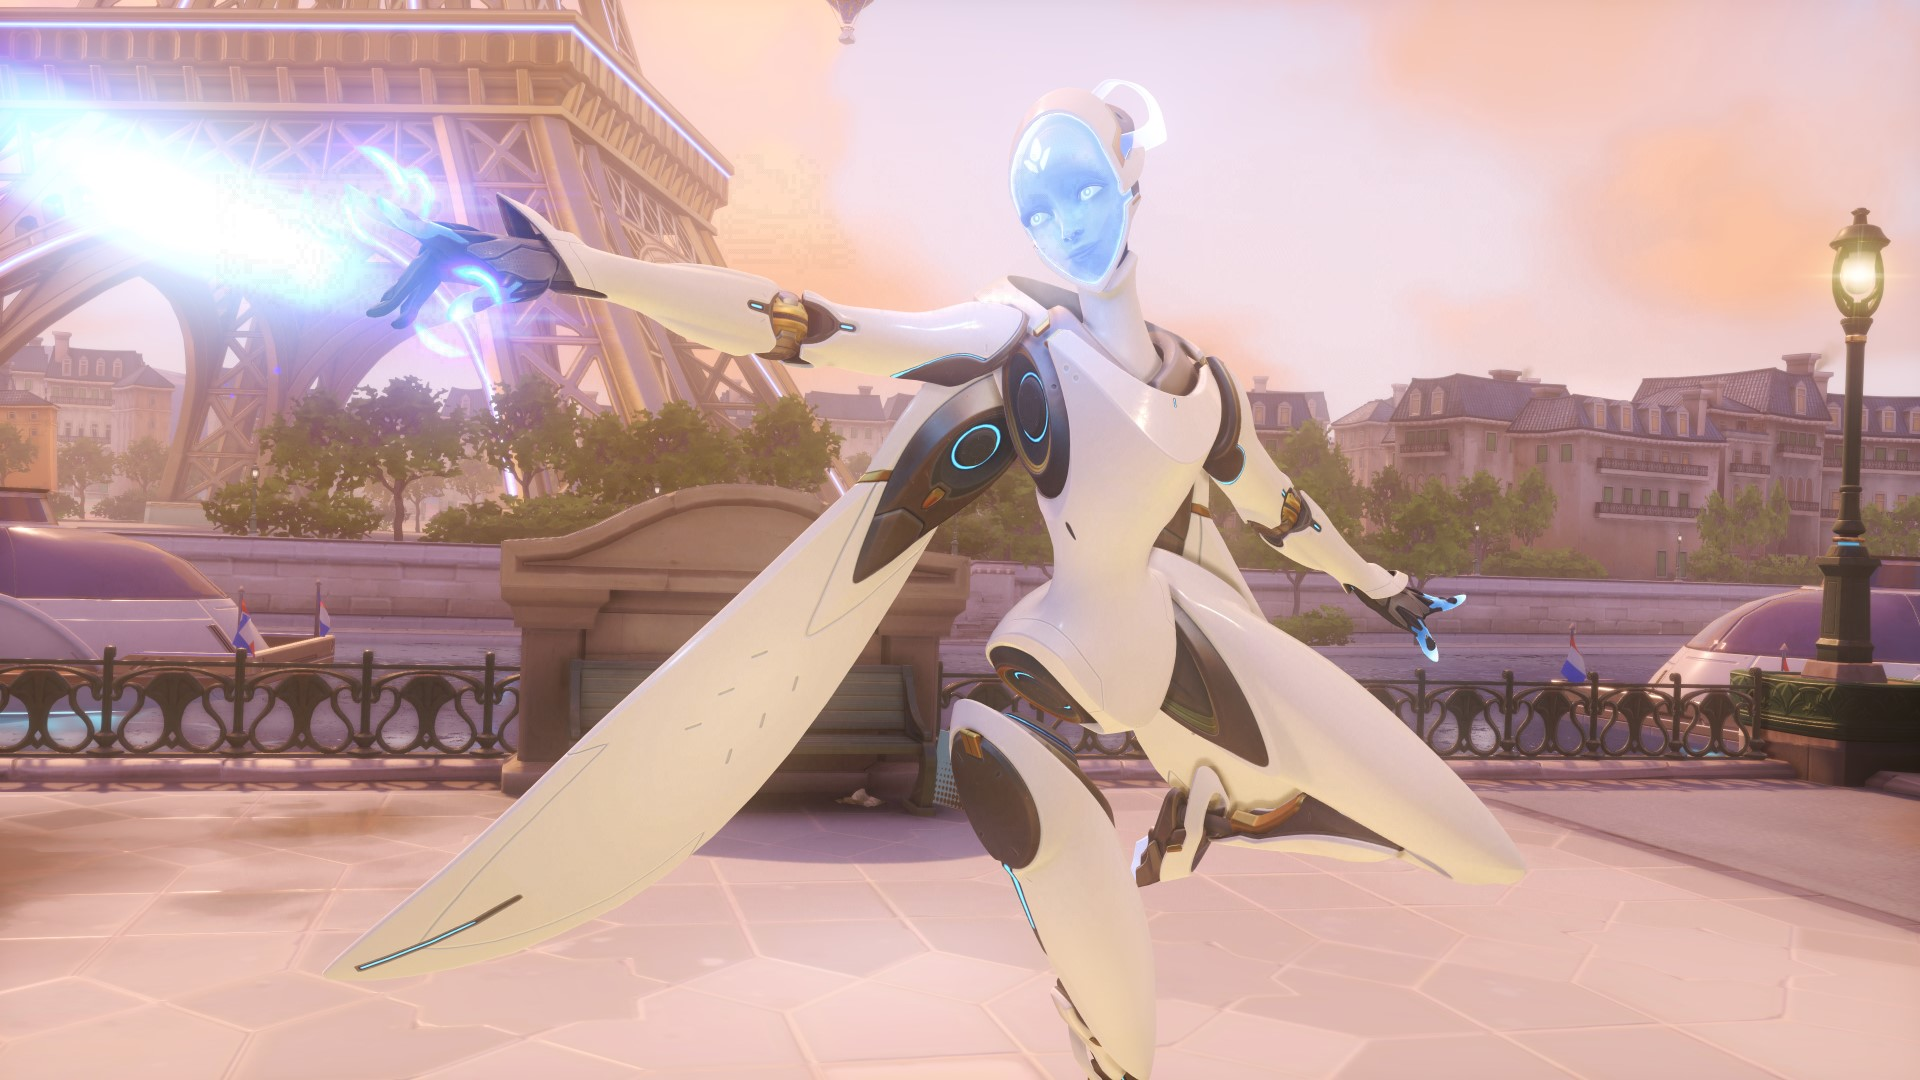 Blizzard releases Echo's skins on the Overwatch PTR